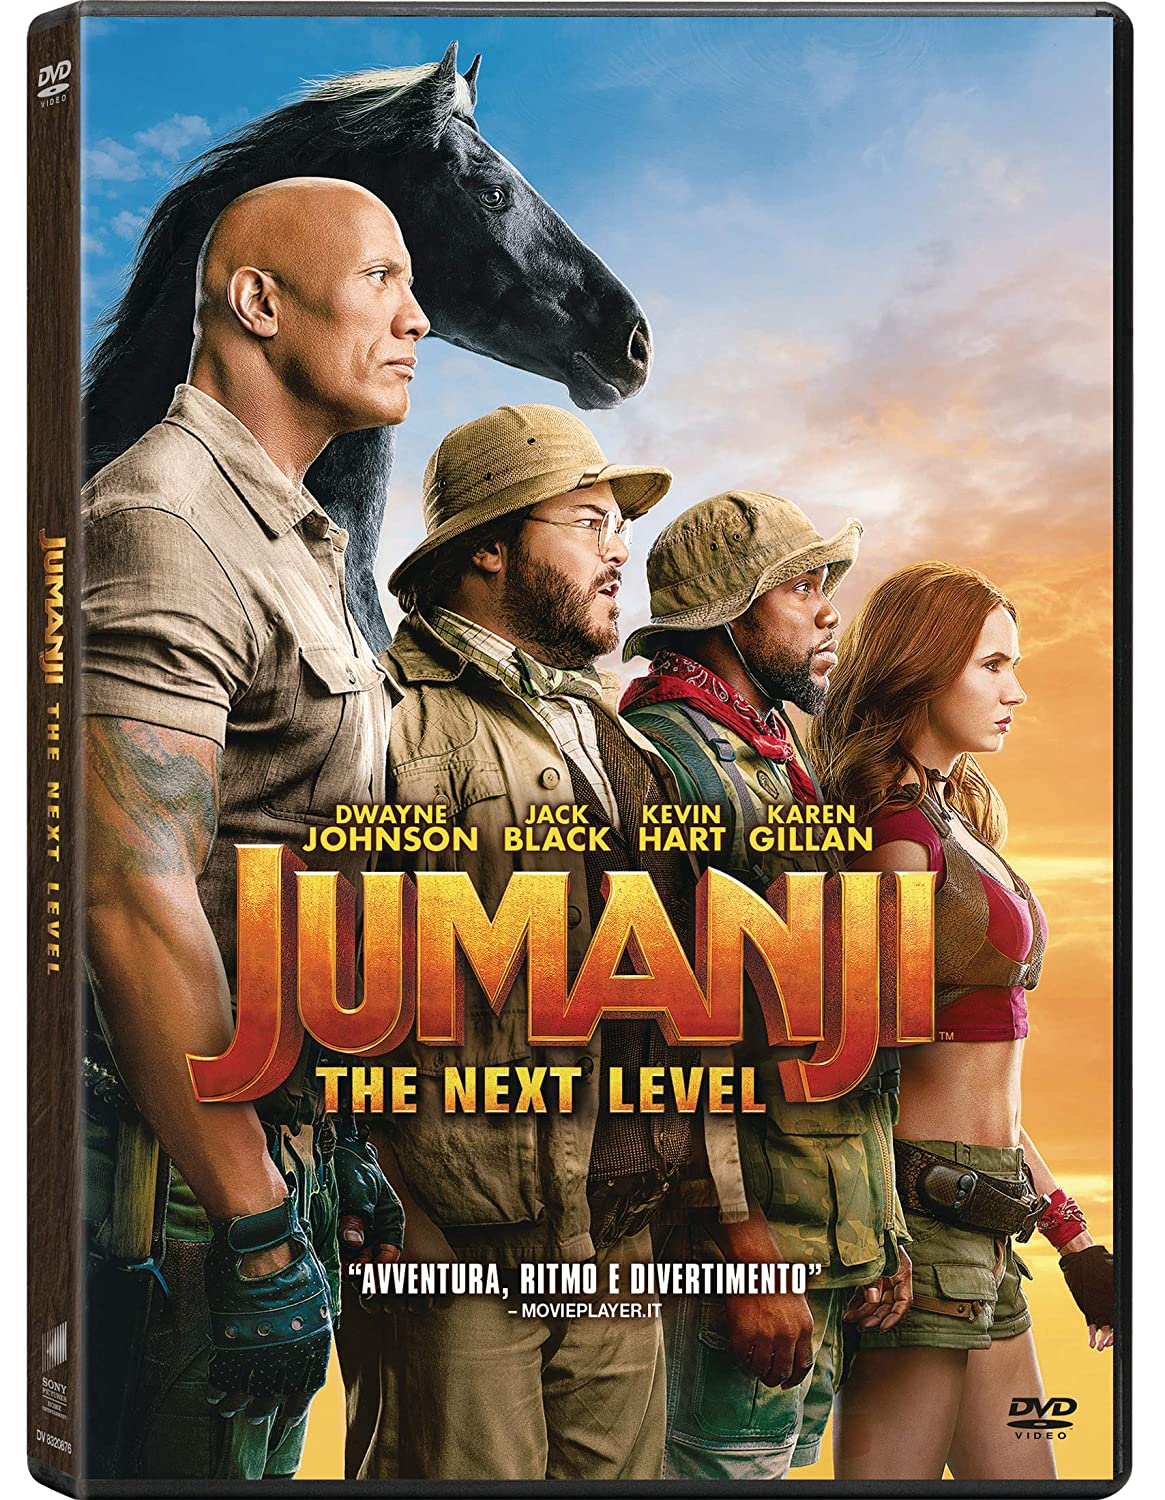 JUMANJI THE NEXT LEVEL (DVD)